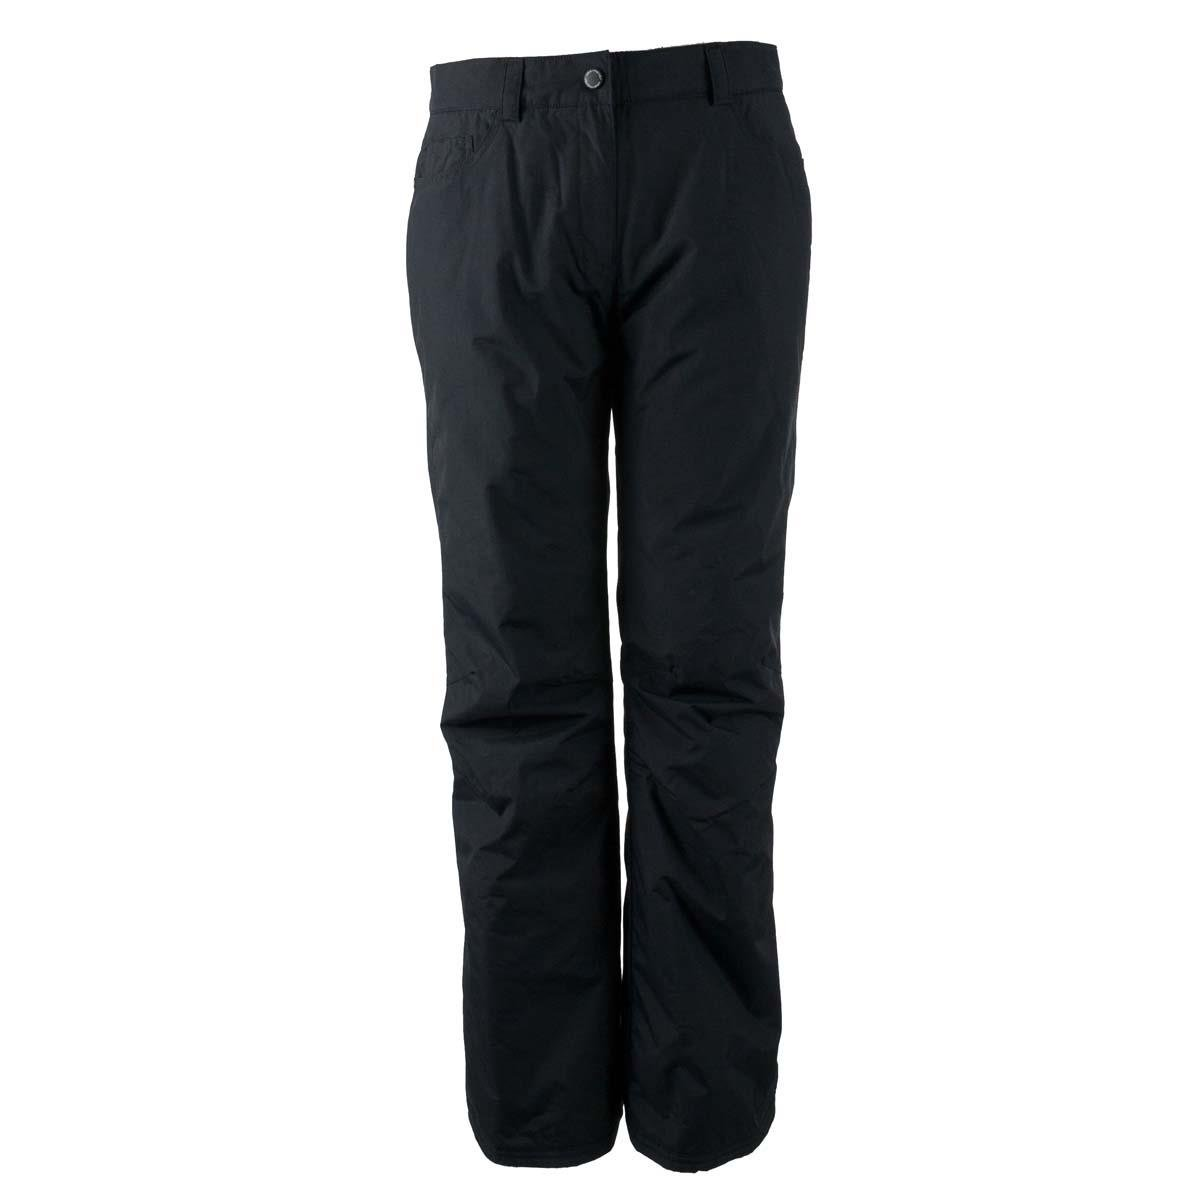 Obermeyer Jewel Jean Womens Ski Pants - 16/Black by Obermeyer